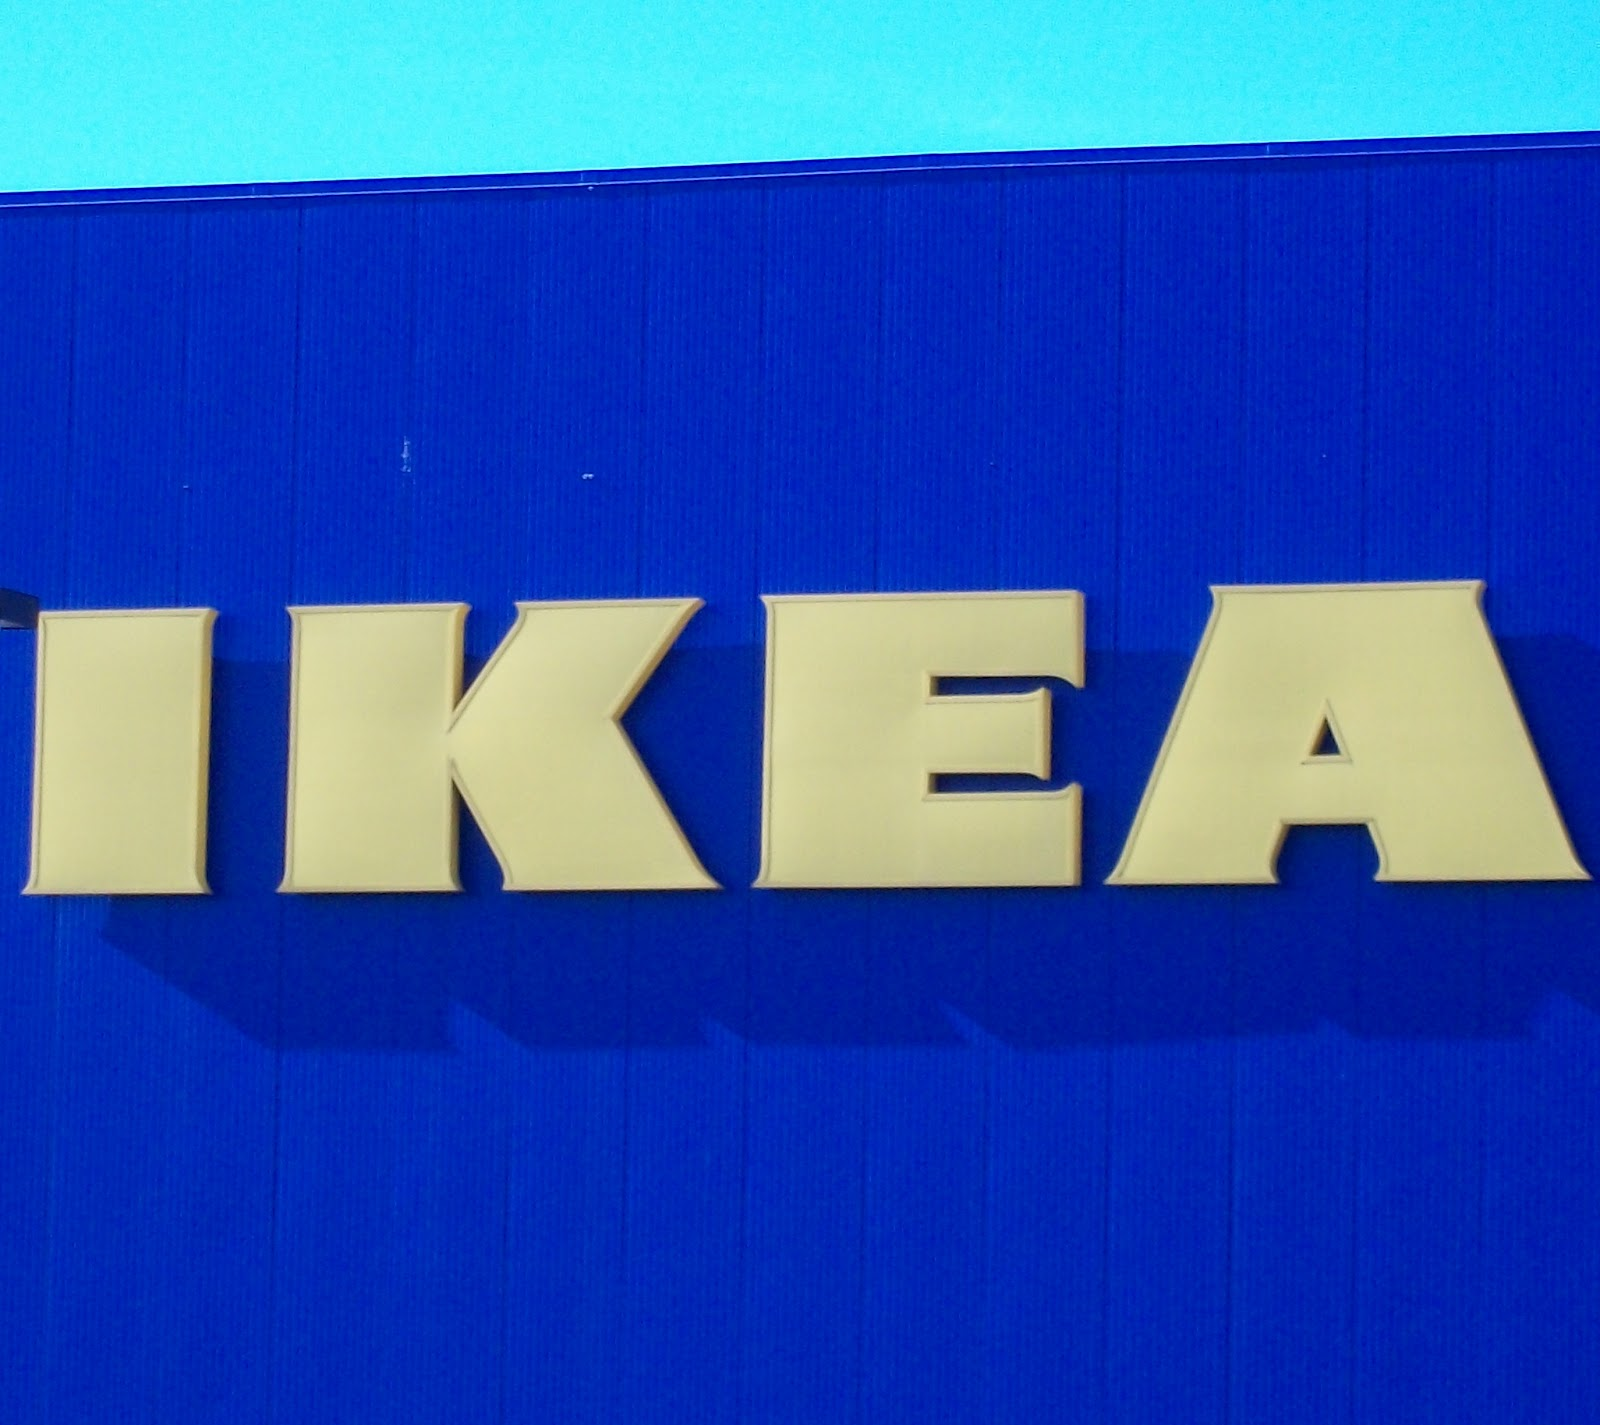 Confessions of a tumbleweed the good the bad and the ikea for Ikea hours minneapolis